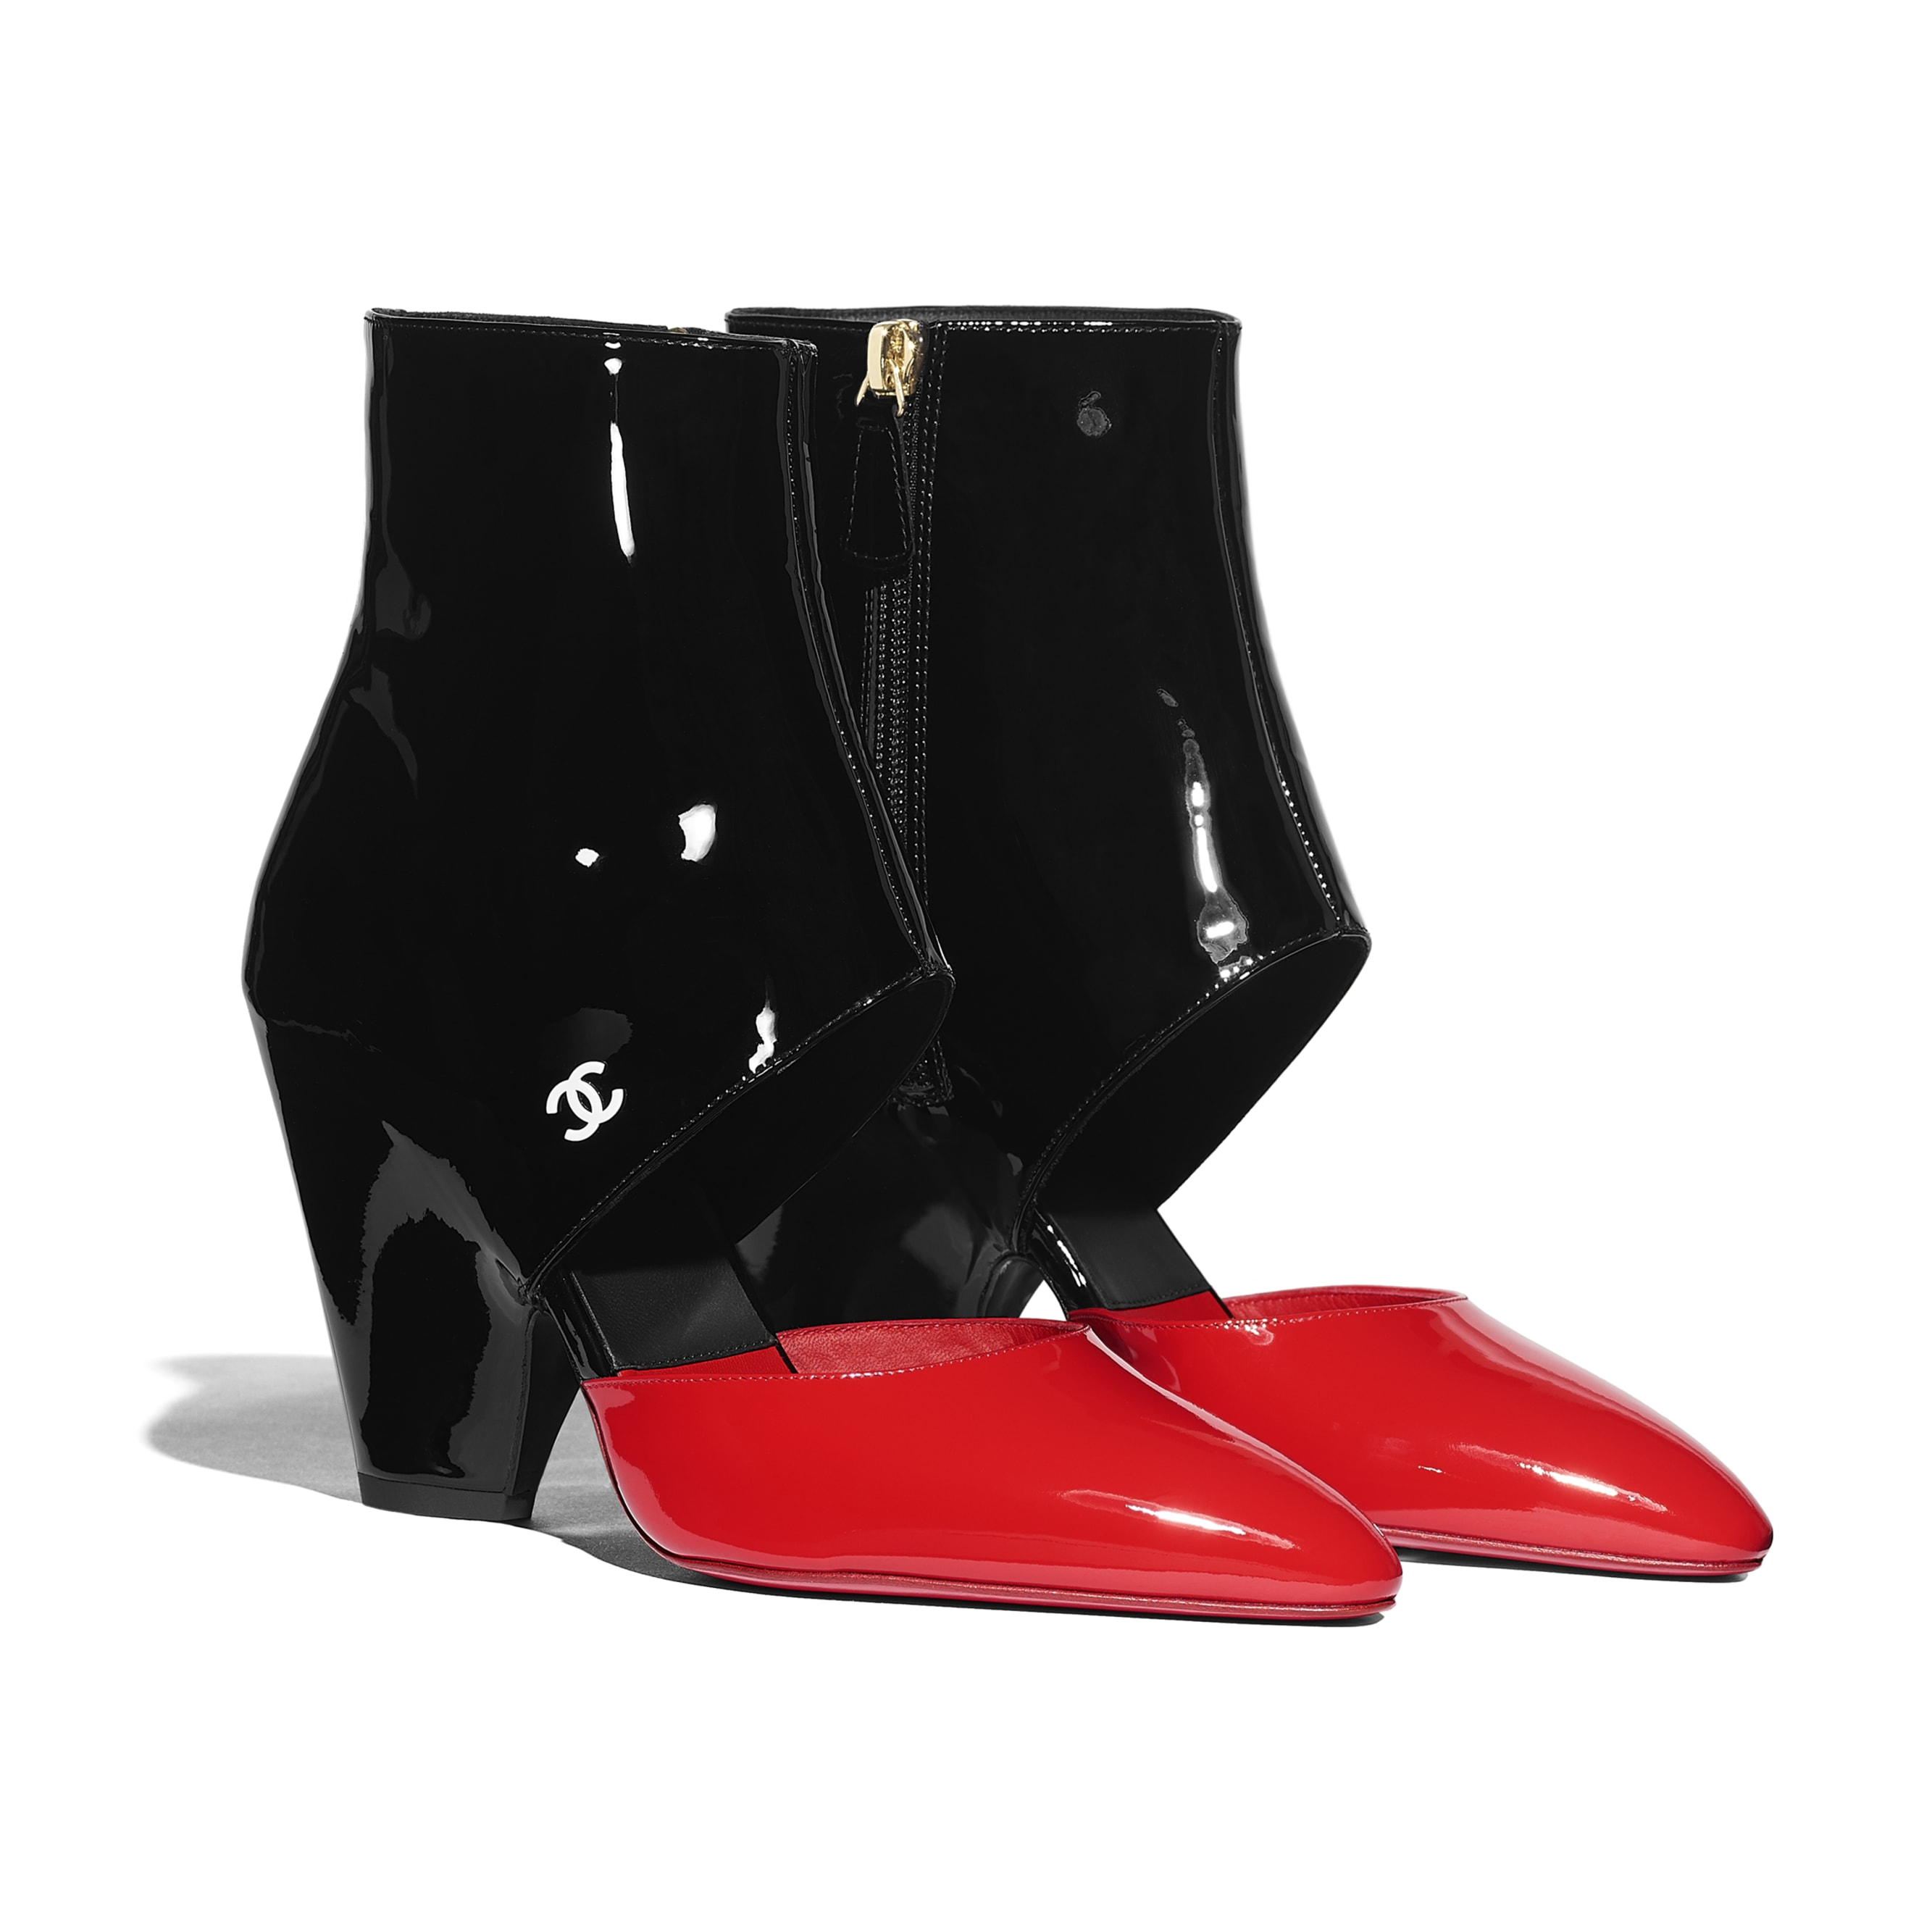 Open Ankle Boots - Red & Black - Patent Calfskin - CHANEL - Alternative view - see standard sized version